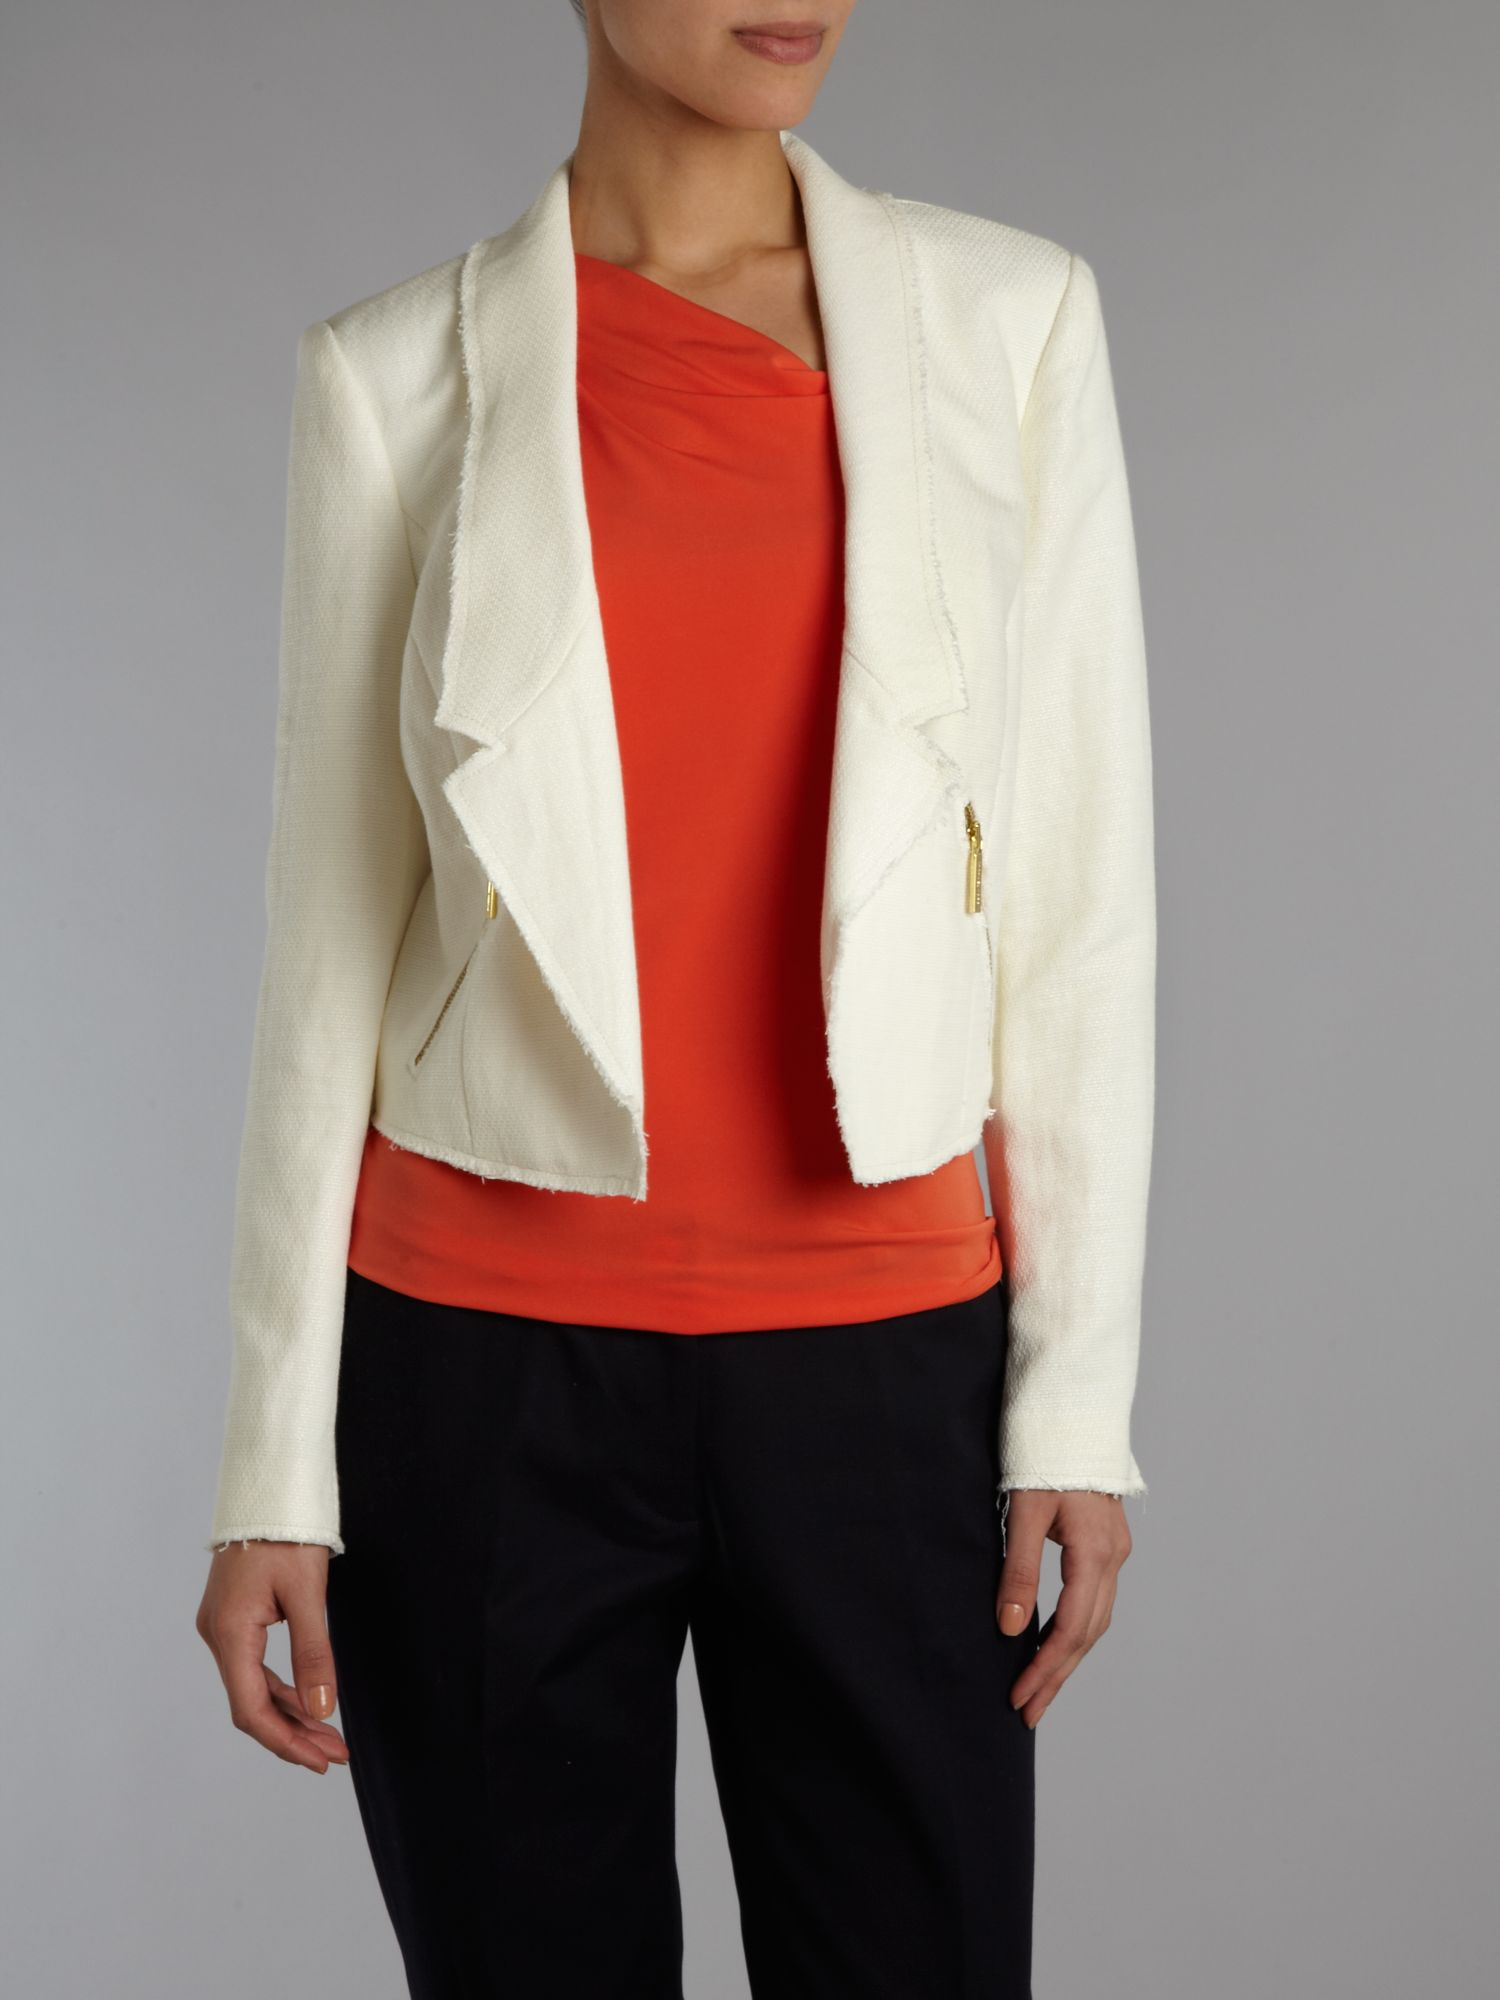 Cropped long sleeved jacket